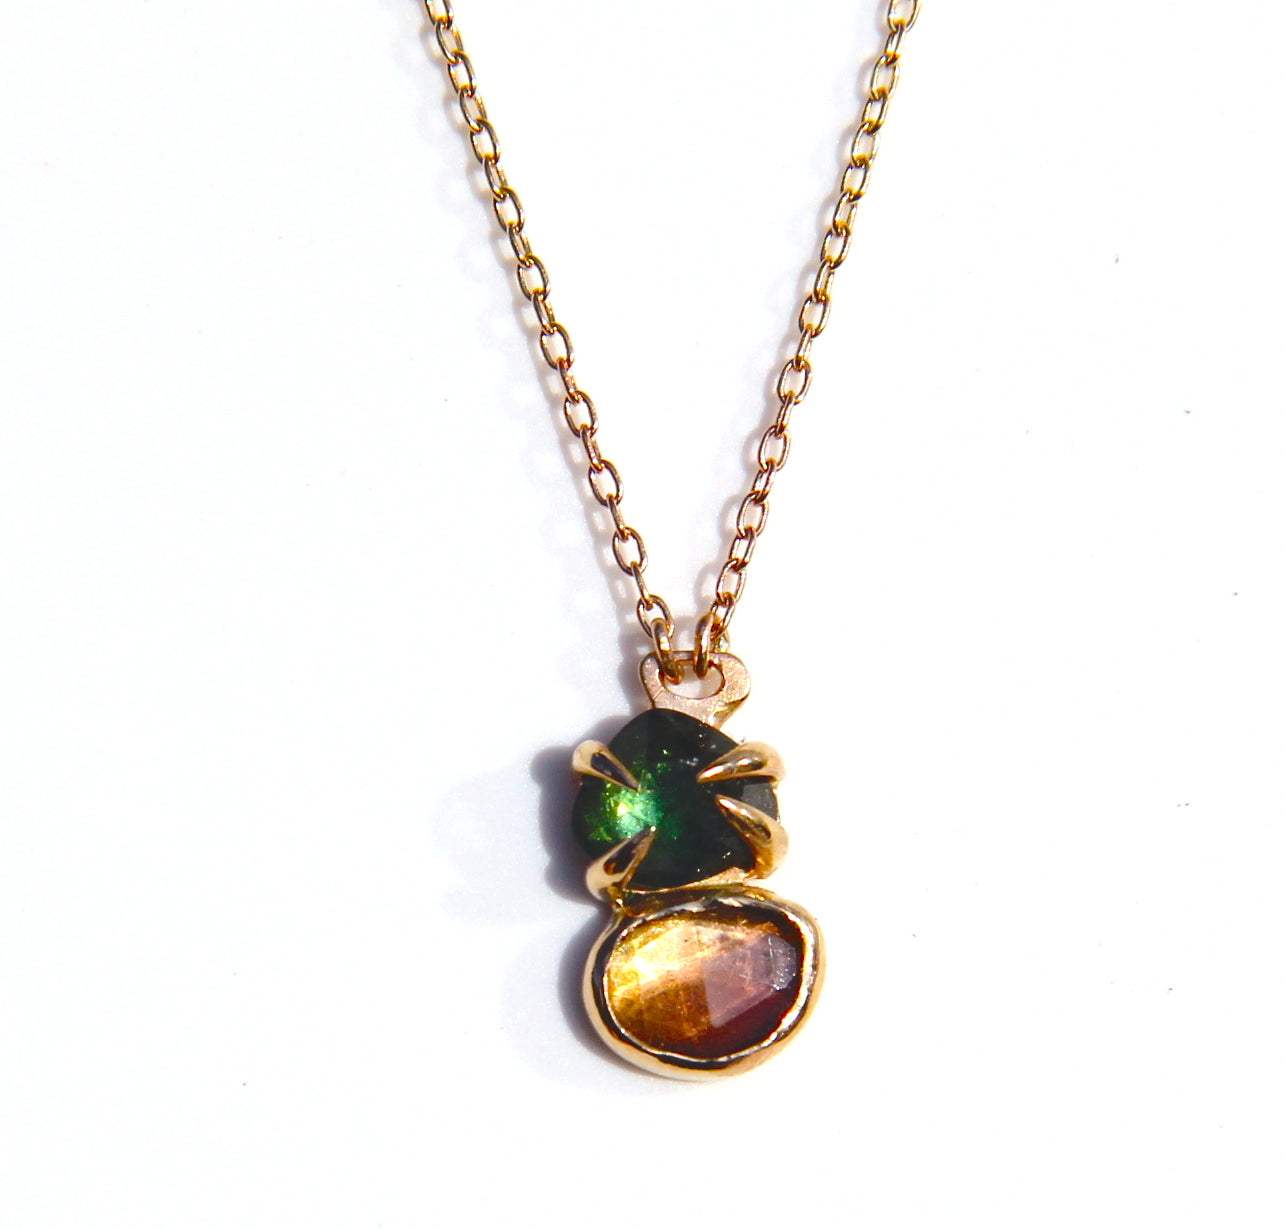 Green and Pink Tourmaline Necklace